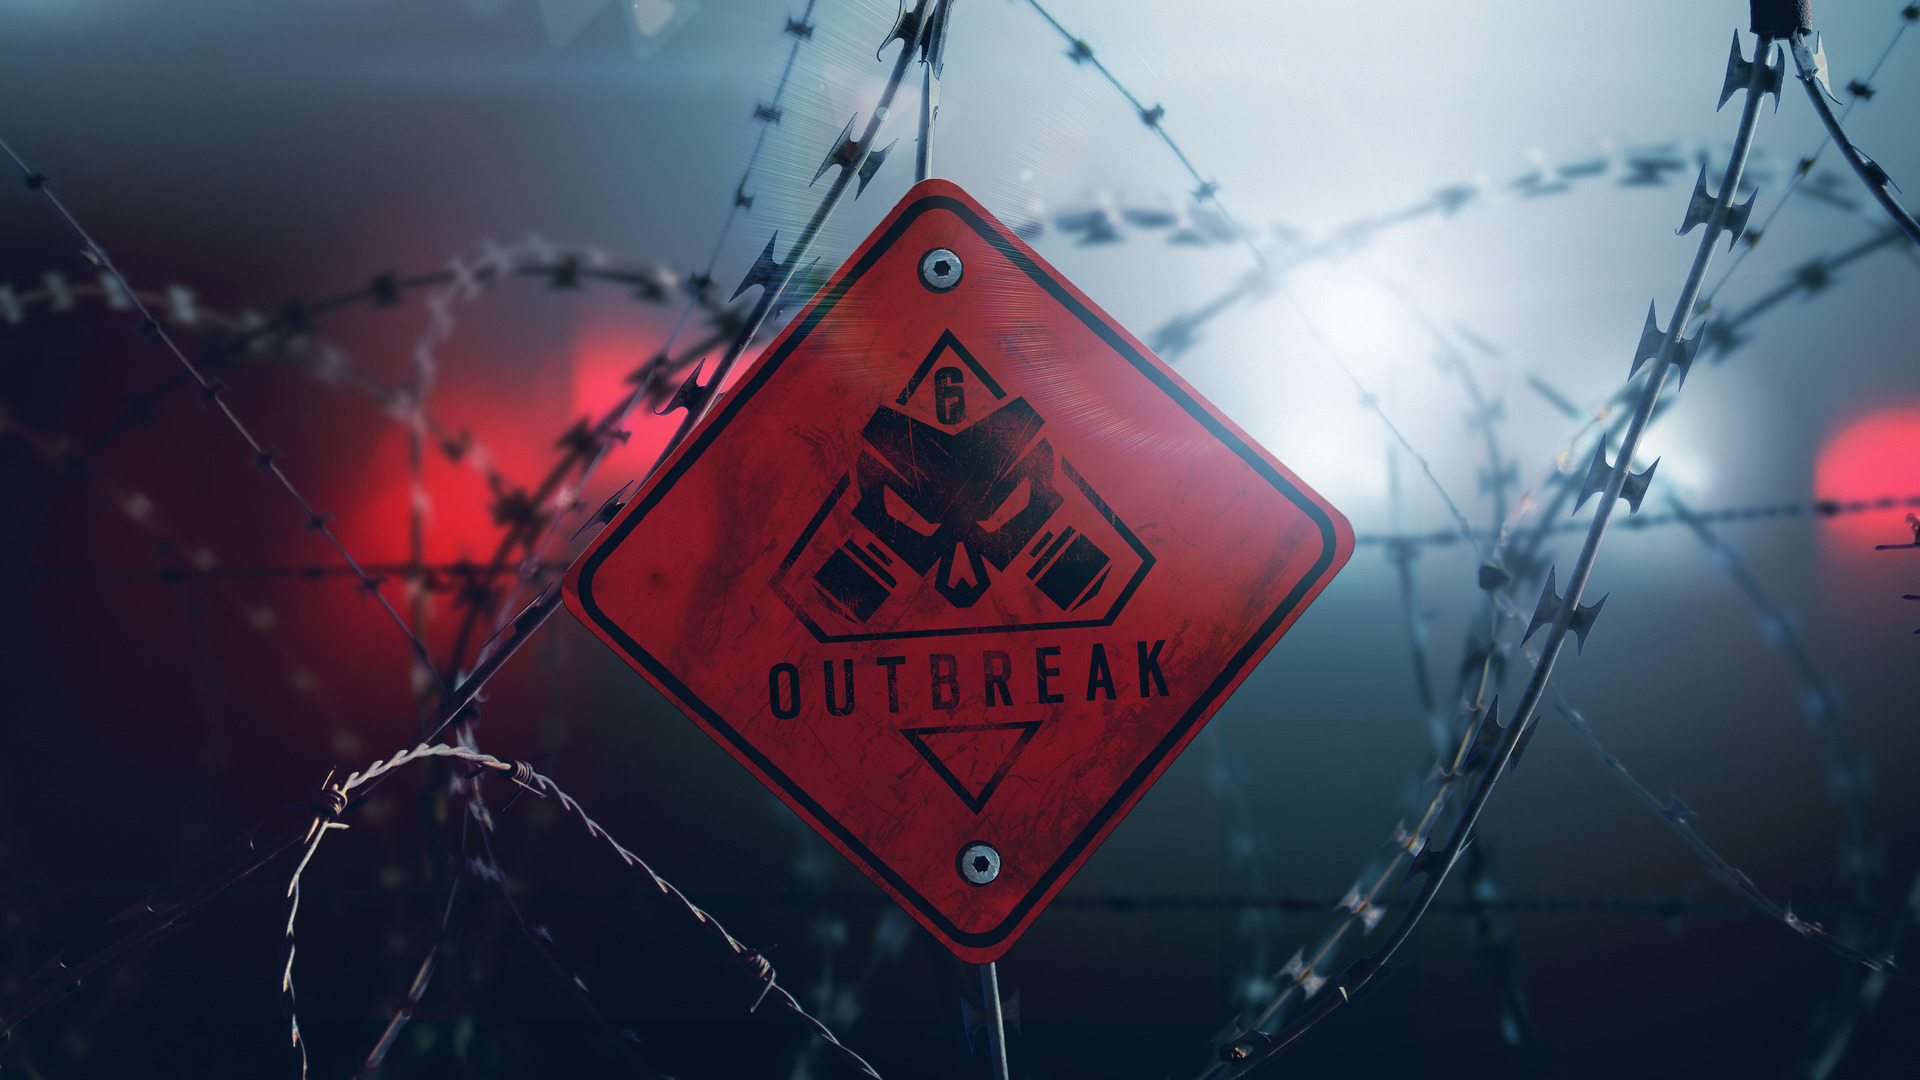 Rainbow-Six-Siege-Outbreak-guide-Tips-tricks-and-strategy-advice